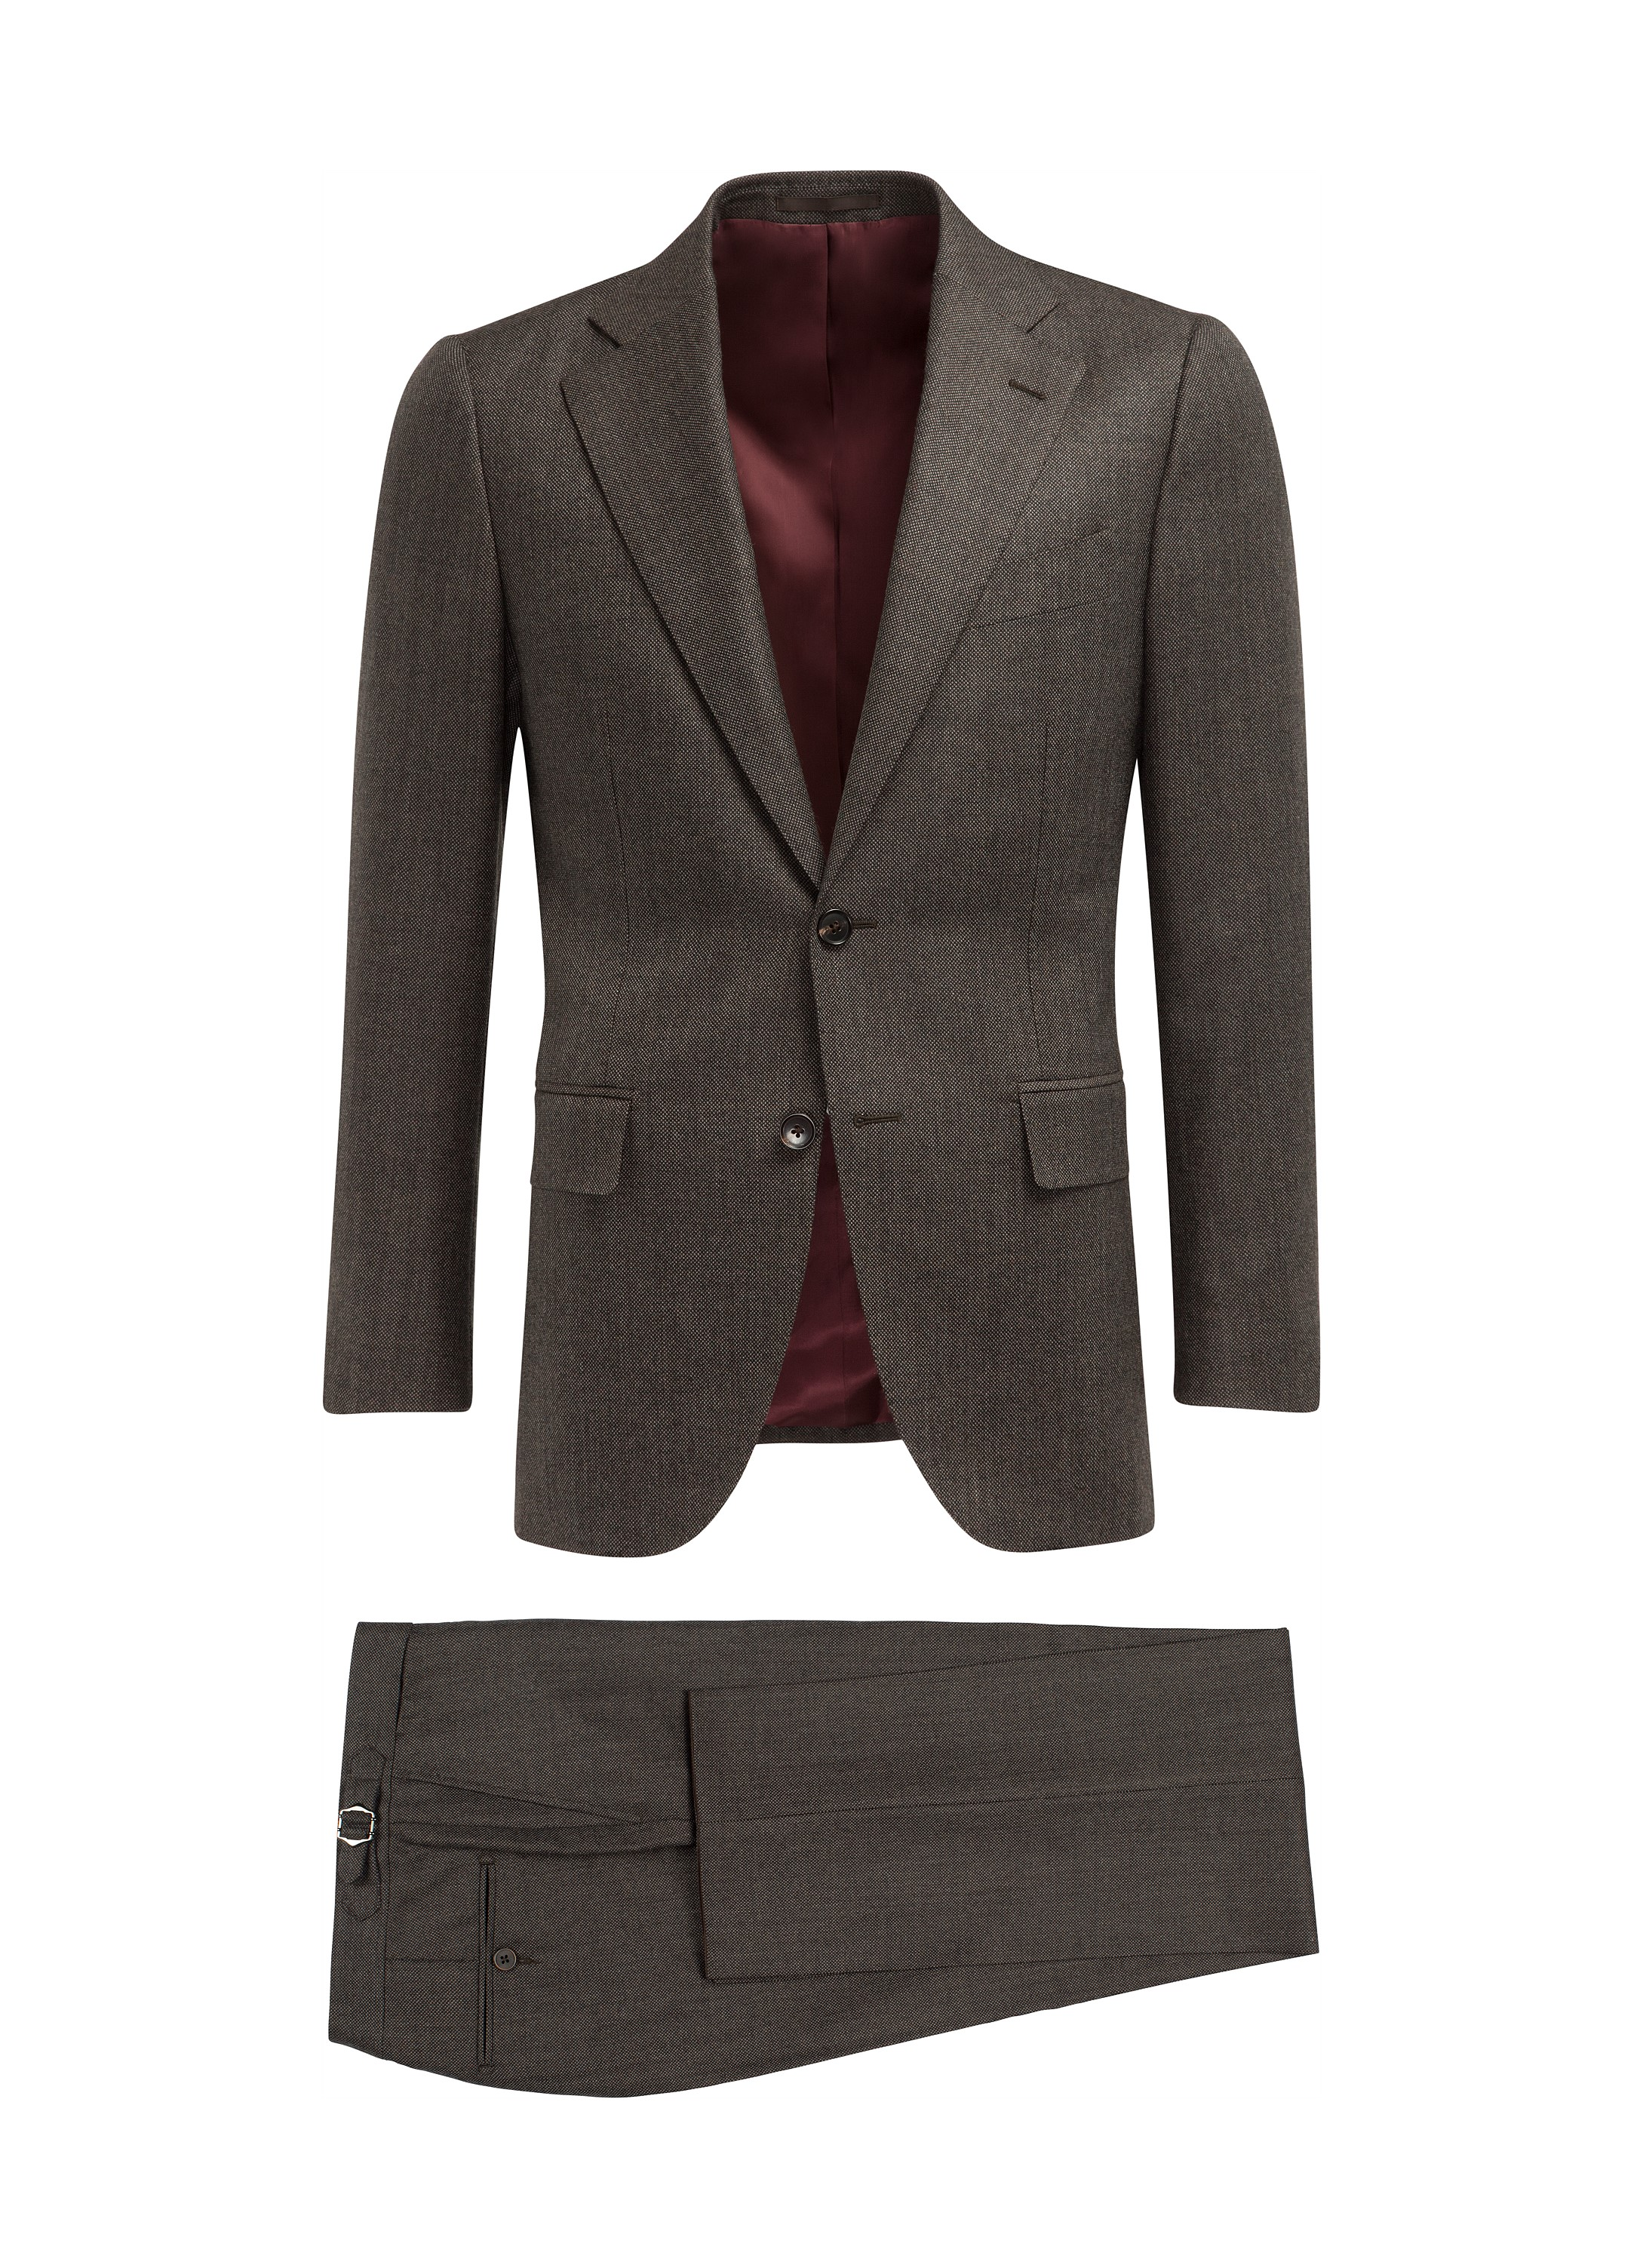 http://statics.suitsupply.com/images/products/Suits/zoom/Suits_Brown_Plain_La_Spalla_P3923_Suitsupply_Online_Store_5.jpg